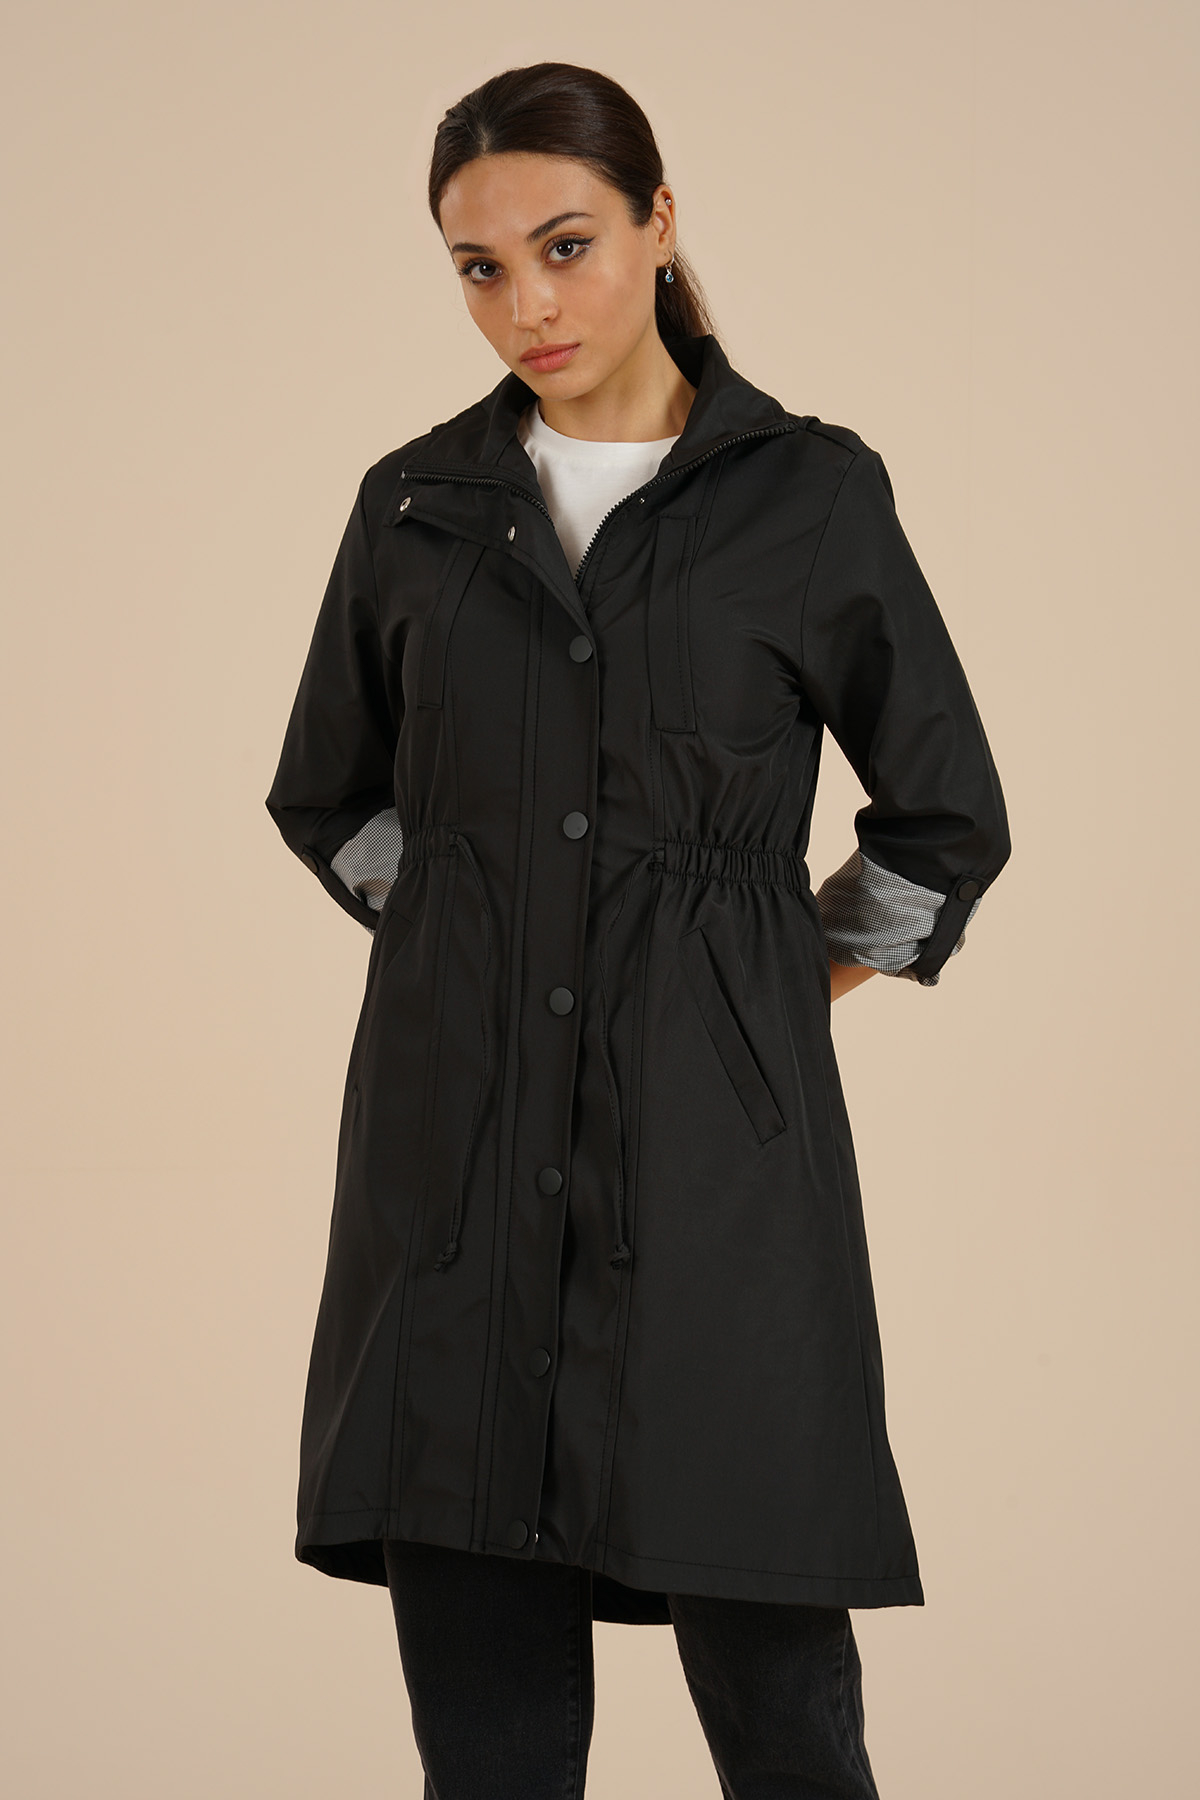 Markosin Women's Trench Coat - MAR209171 Black